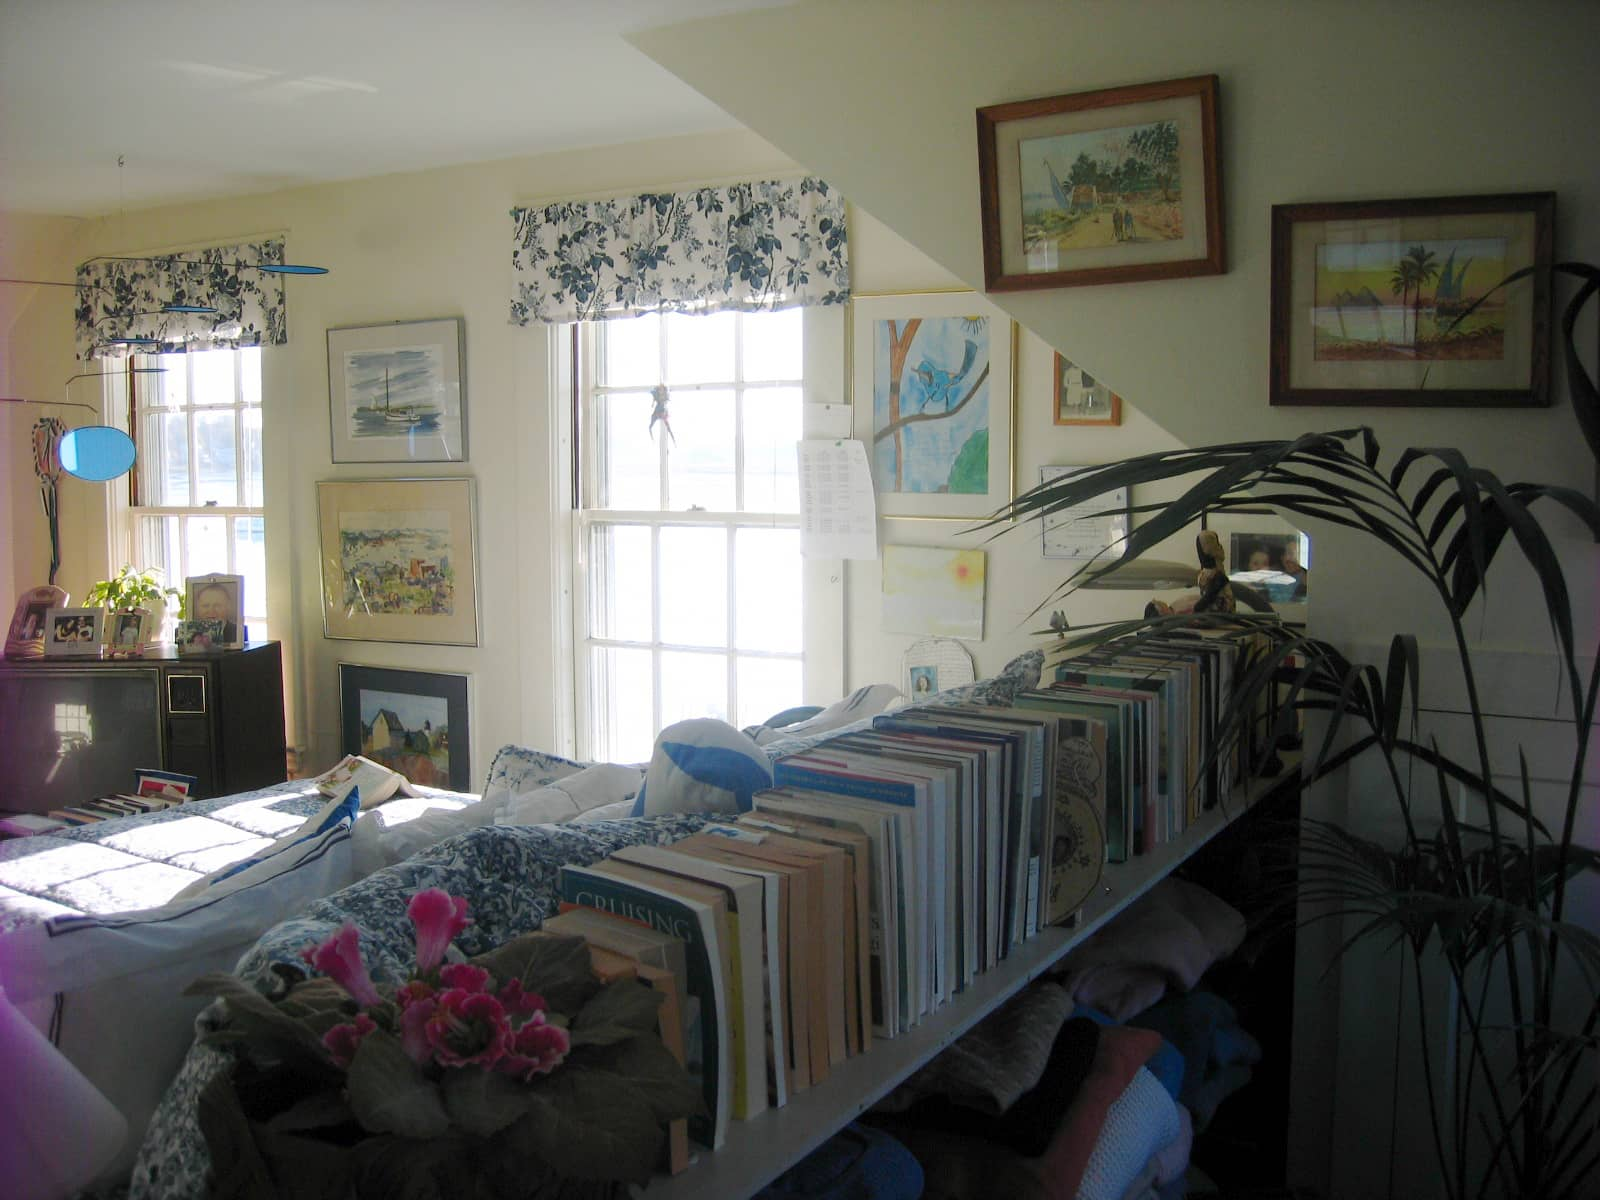 89 Year Old Woman Shares Her Seaside Cottage with AT!: gallery slide thumbnail 2